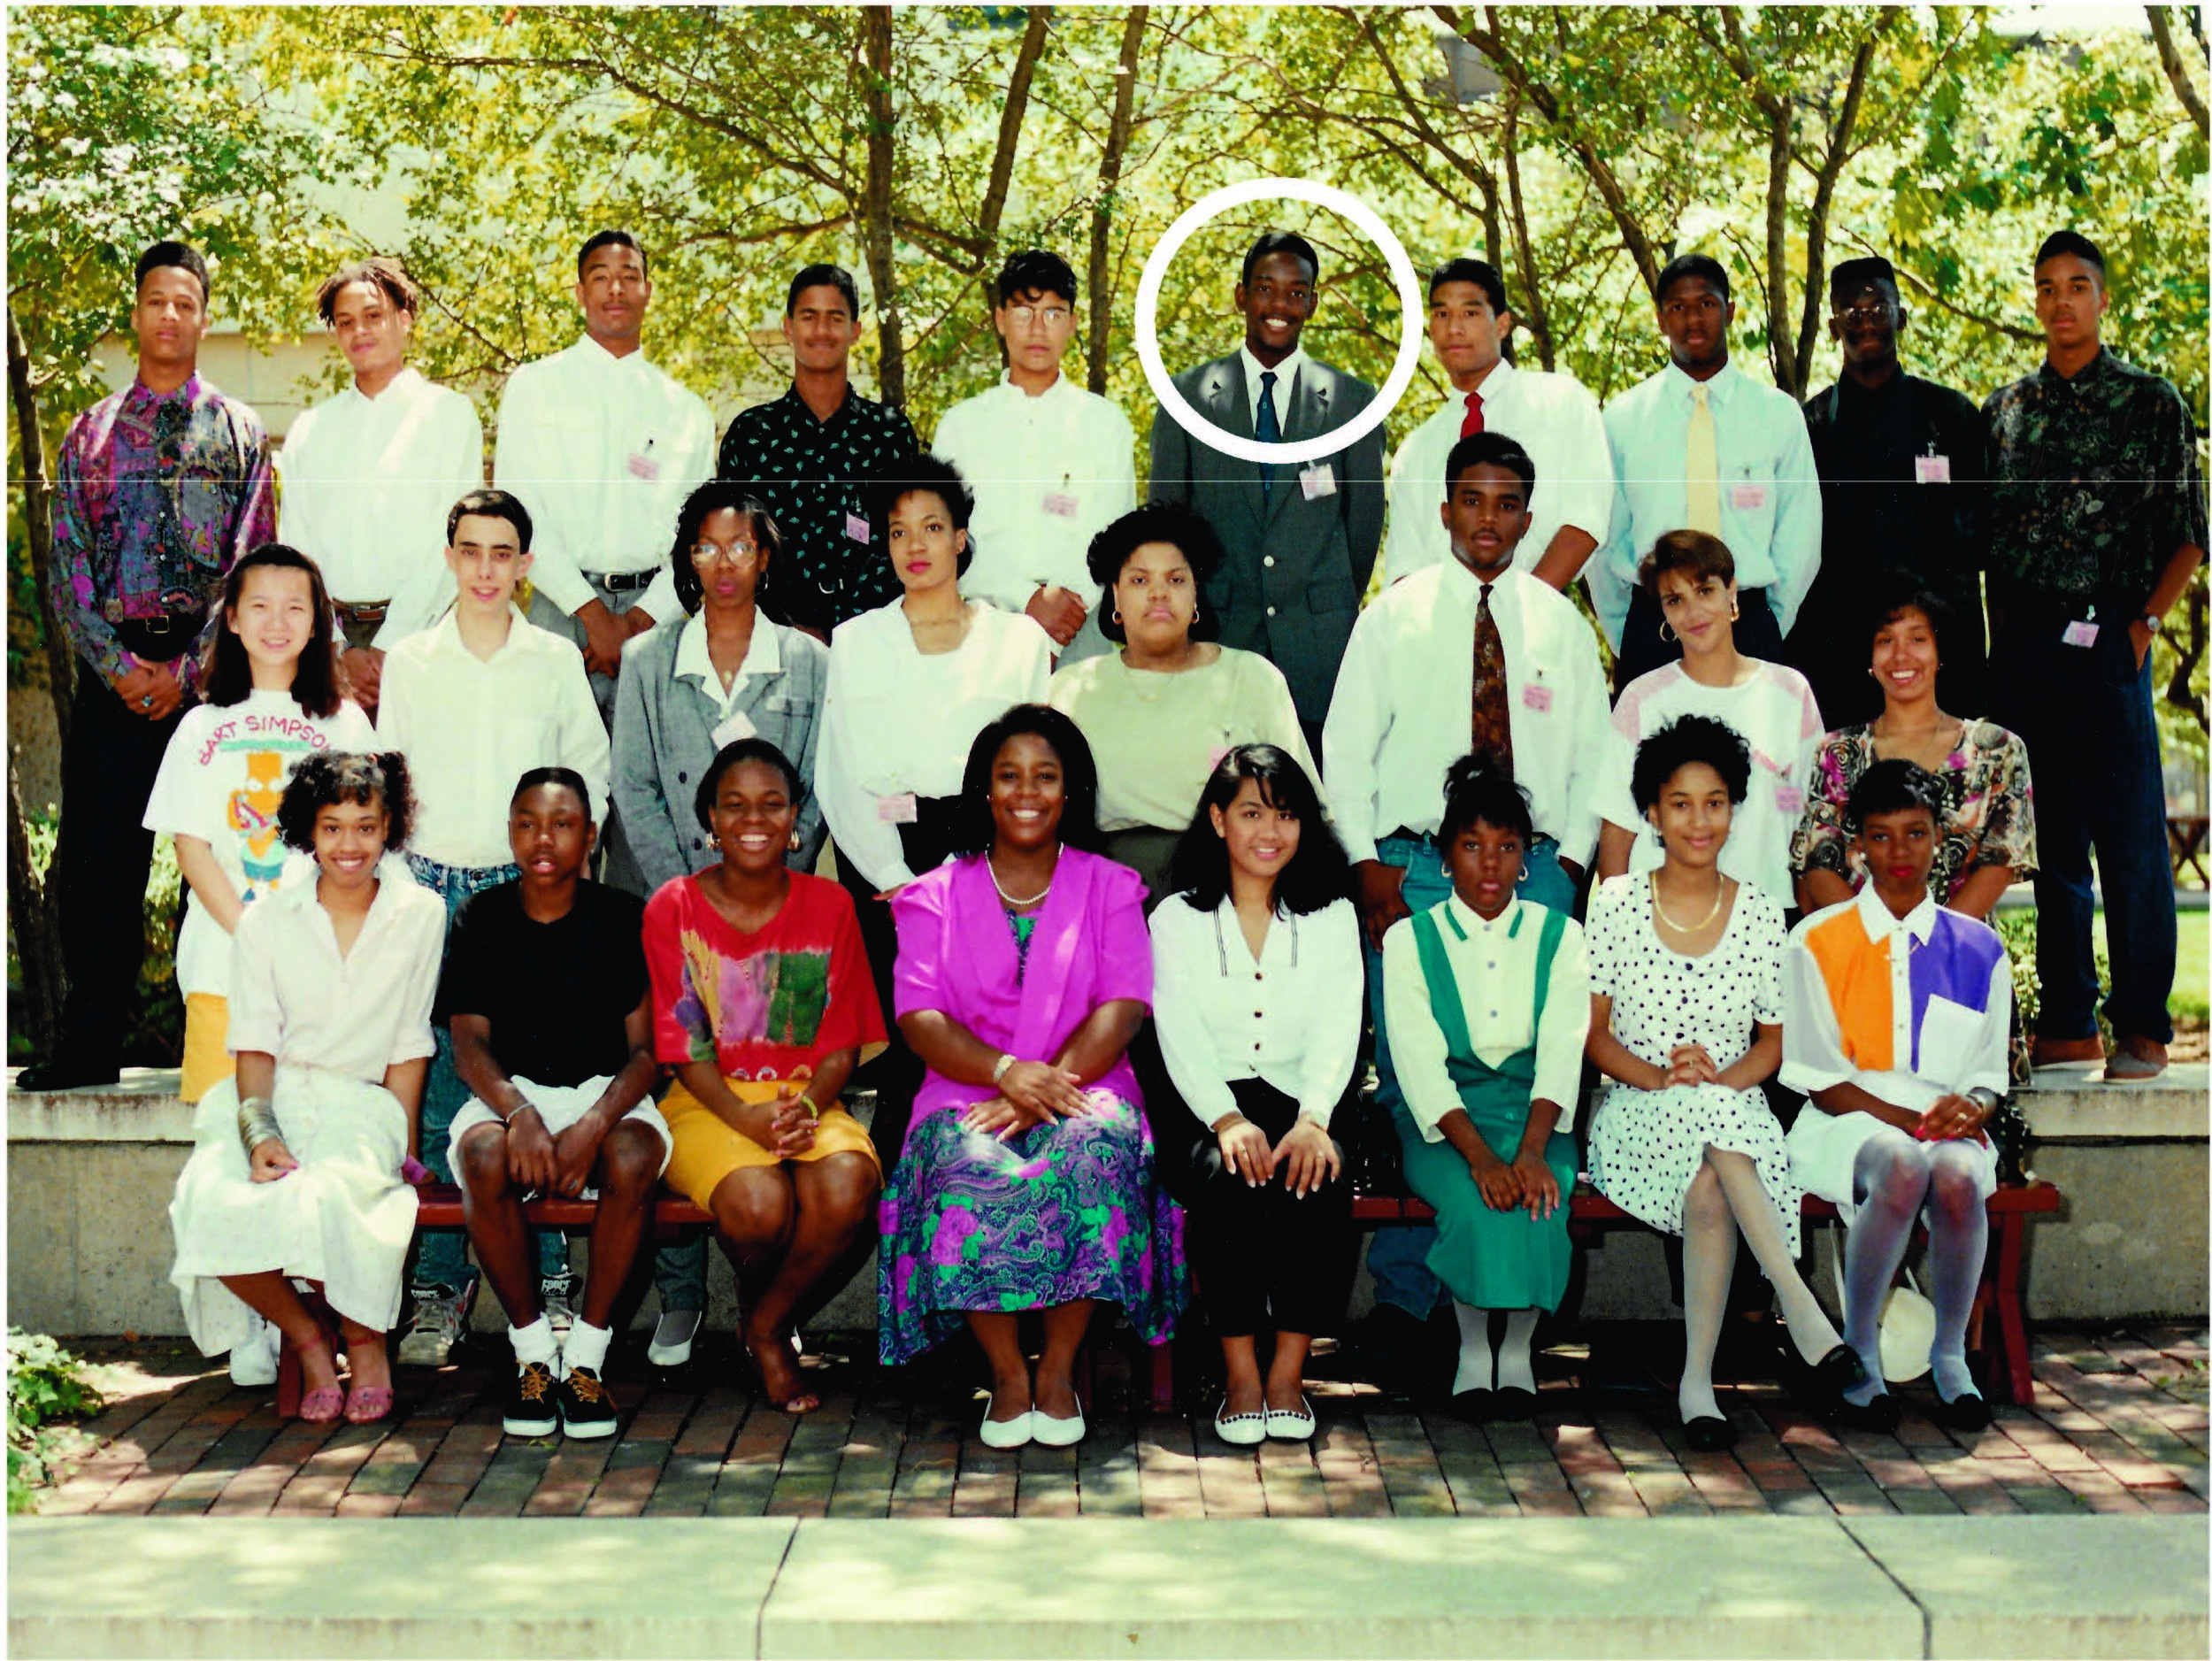 Well suited for success: Jeff Coleman (circle) in Bellcore STEP III program alumni in 1991.